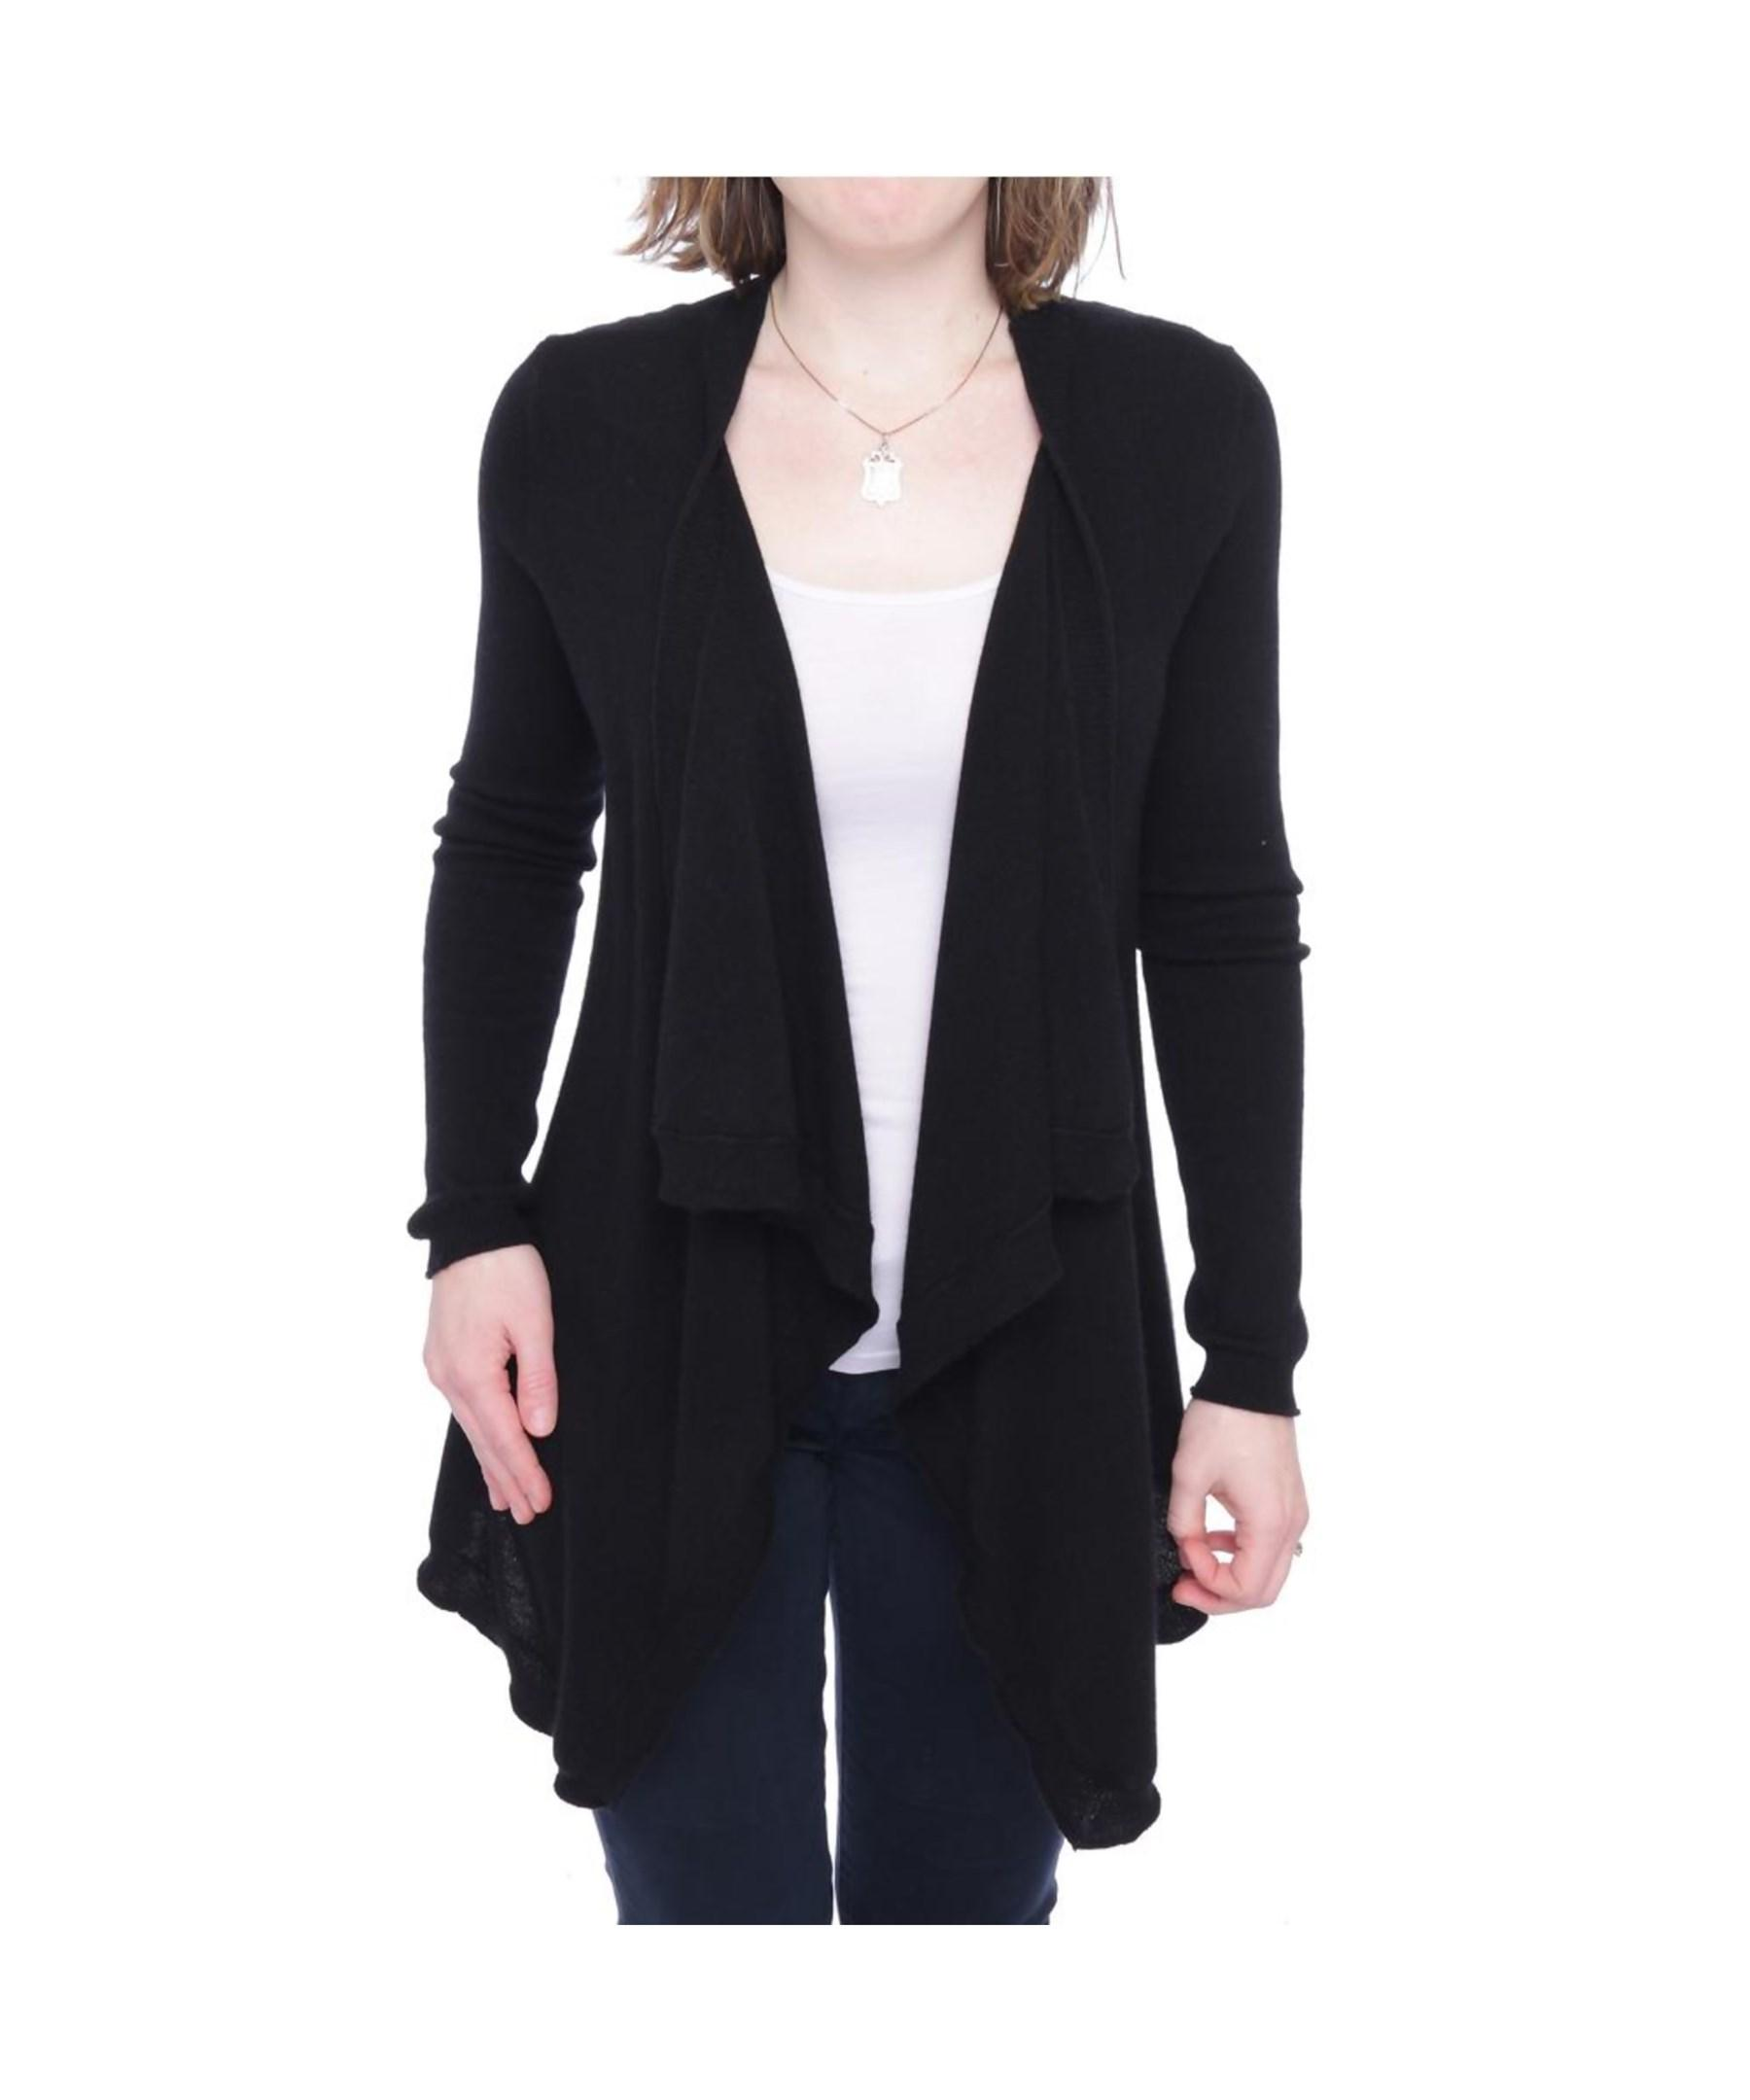 Try a mustard yellow cardigan, a navy cardigan, a maroon cardigan, a tan cardigan, or a white cardigan sweater on top of a black jumpsuit! We recommend cocoon cardigan sweaters for women that prefer a little volume in their outfit.